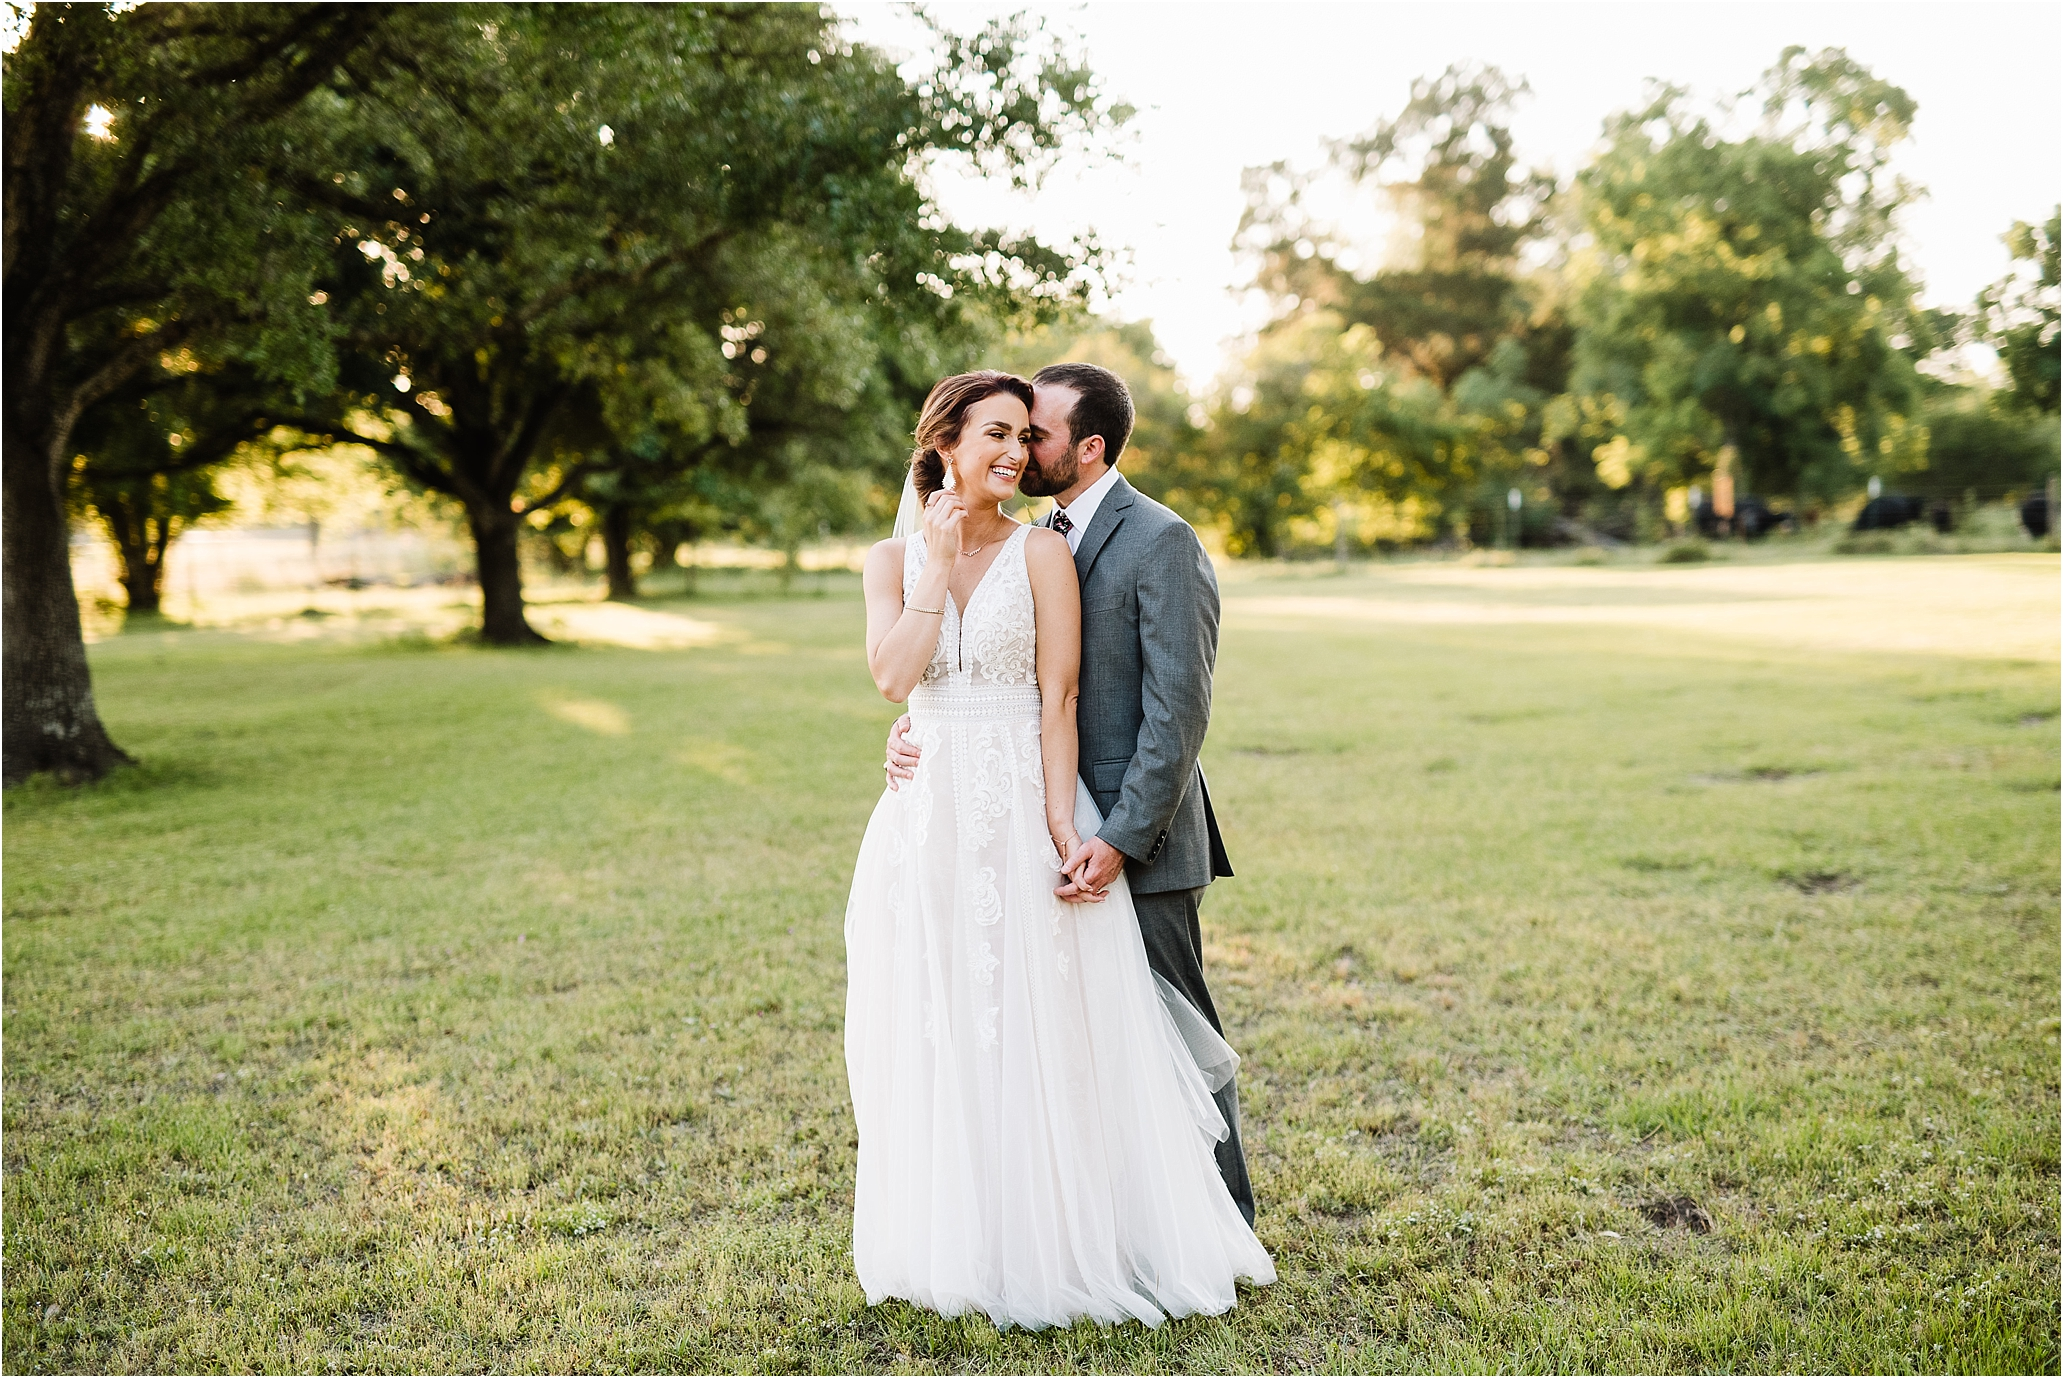 PattisonHouse_TexasWeddingPhotographer_CarlyCrockett&MattBrownWedding_0071.jpg